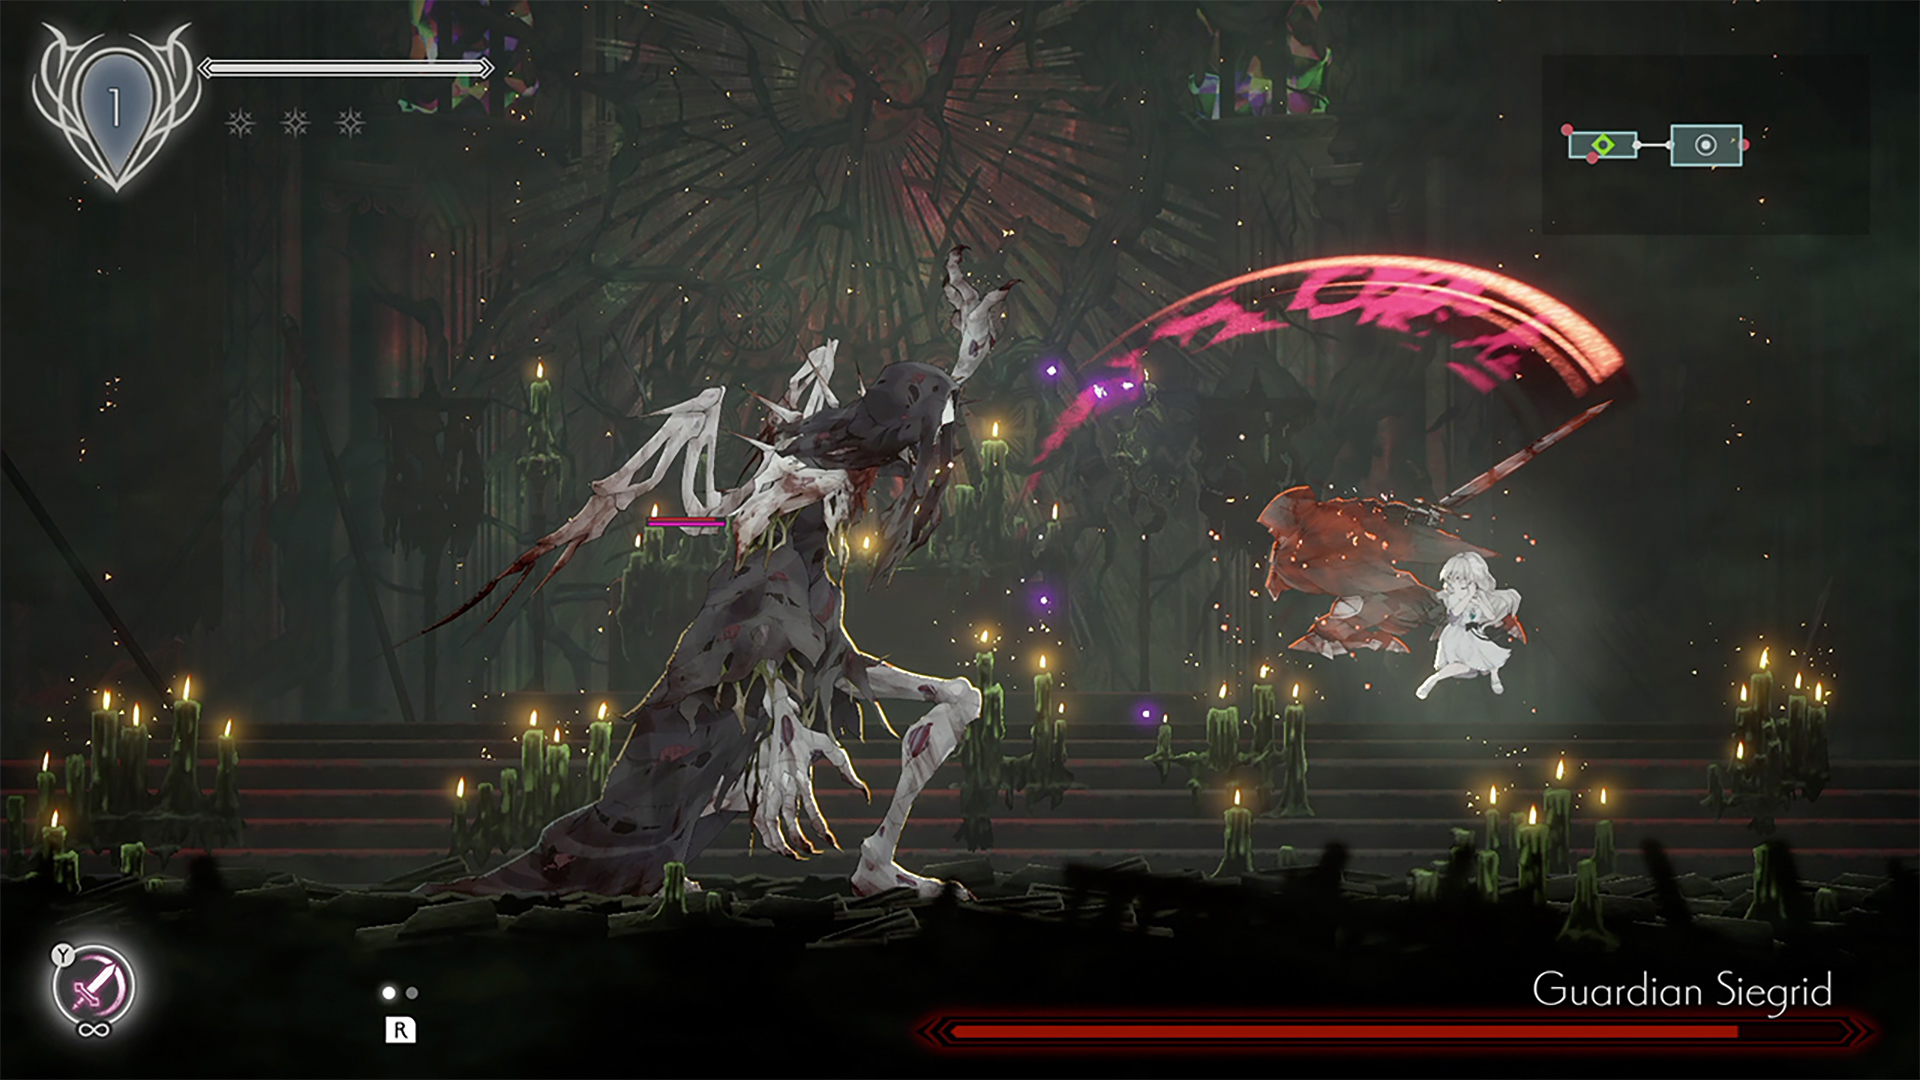 ender lilies, binary haze, dark fantasy, metroidivania, japanese, art, nintendo, nintendo switch, switch, pc, pc gaming, steam, release date, launch, early access, windows, sony, playstation, playstation 4, playstation 5, ps4, ps5